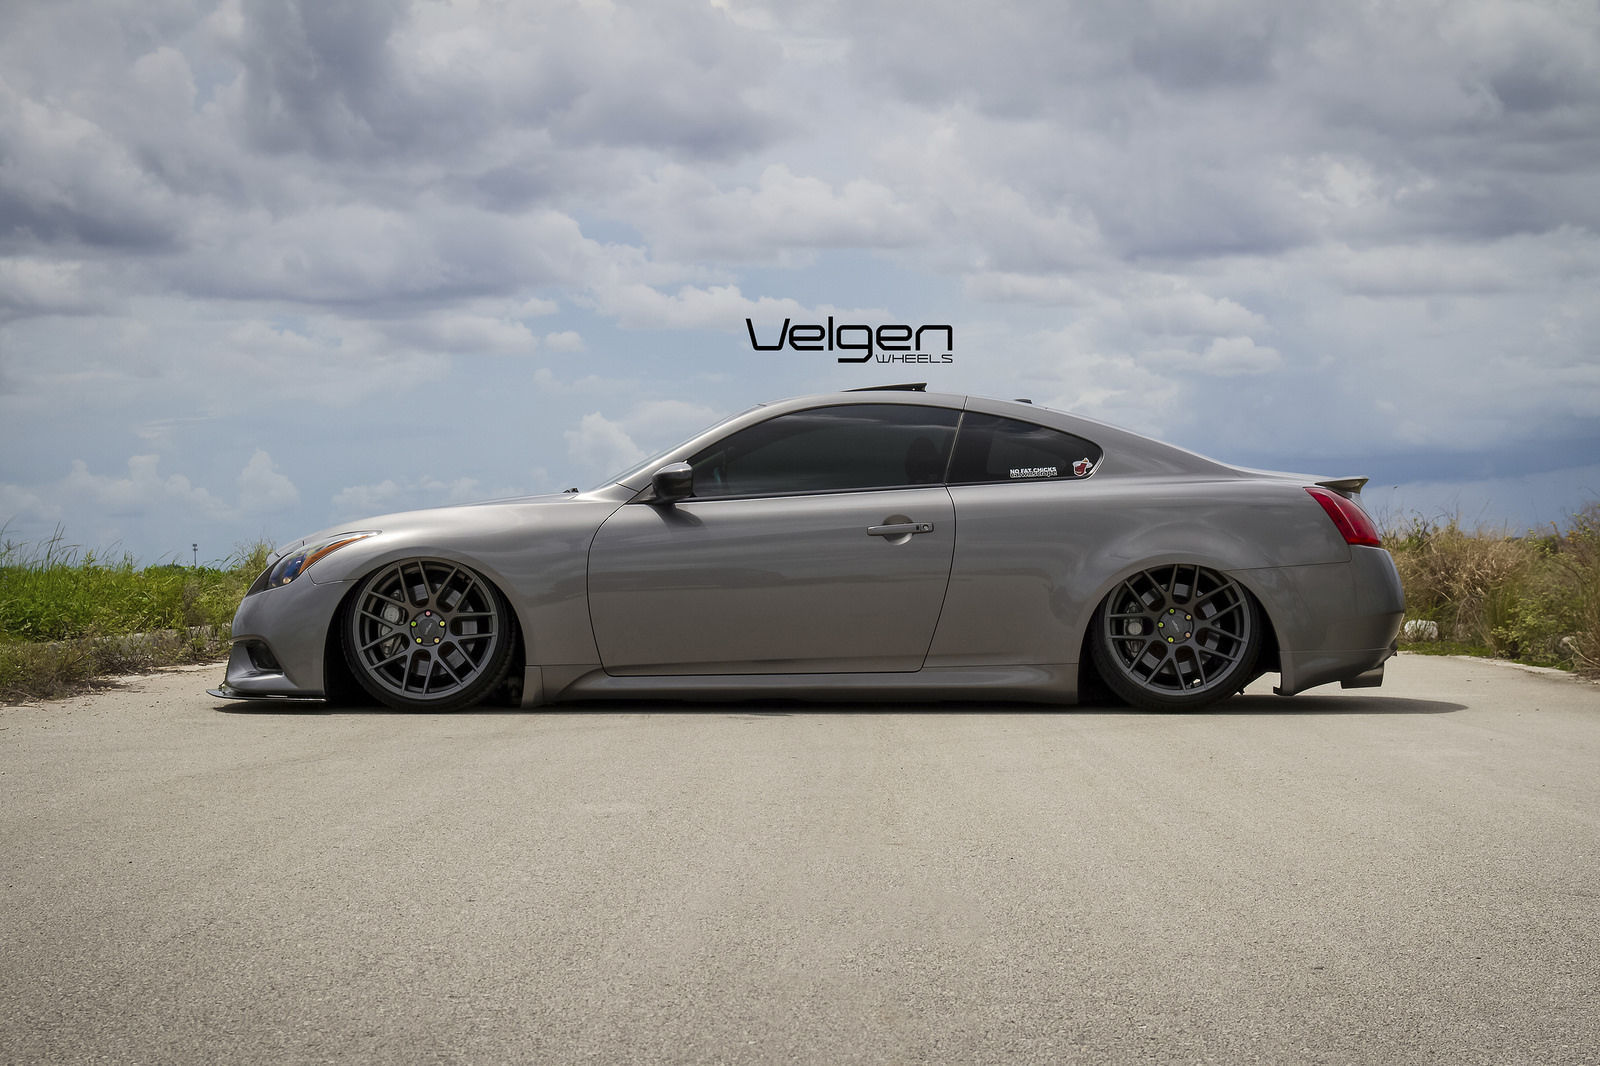 Infiniti G37 Coupe | Bagged Infiniti G37s on Velgen Wheels VMB7